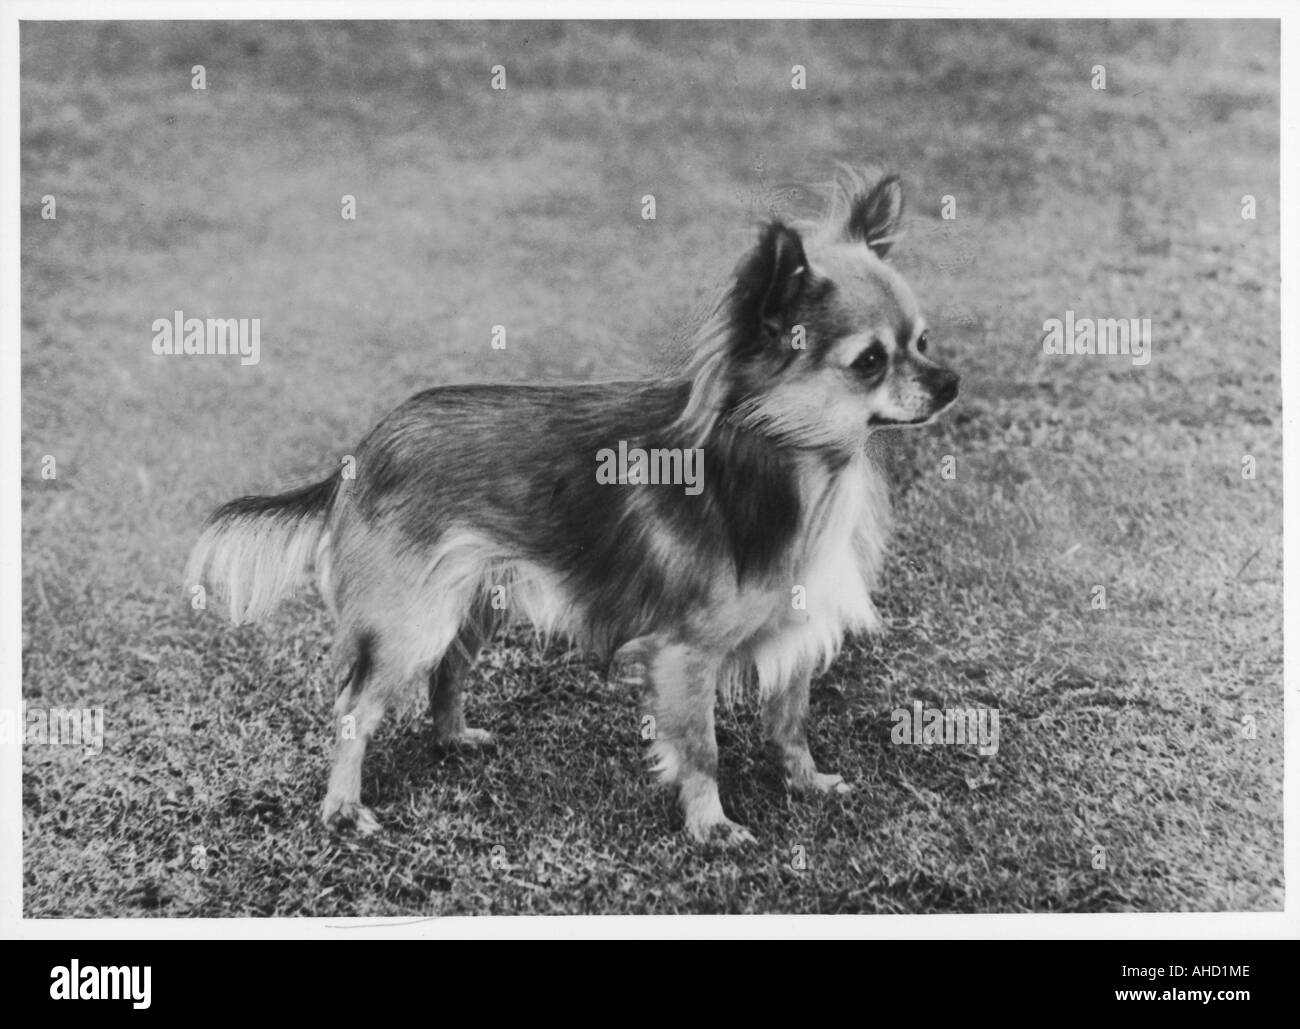 Chihuahua Dogs Black And White Stock Photos Images Alamy Wolf Cihuahua Fall Cub Image